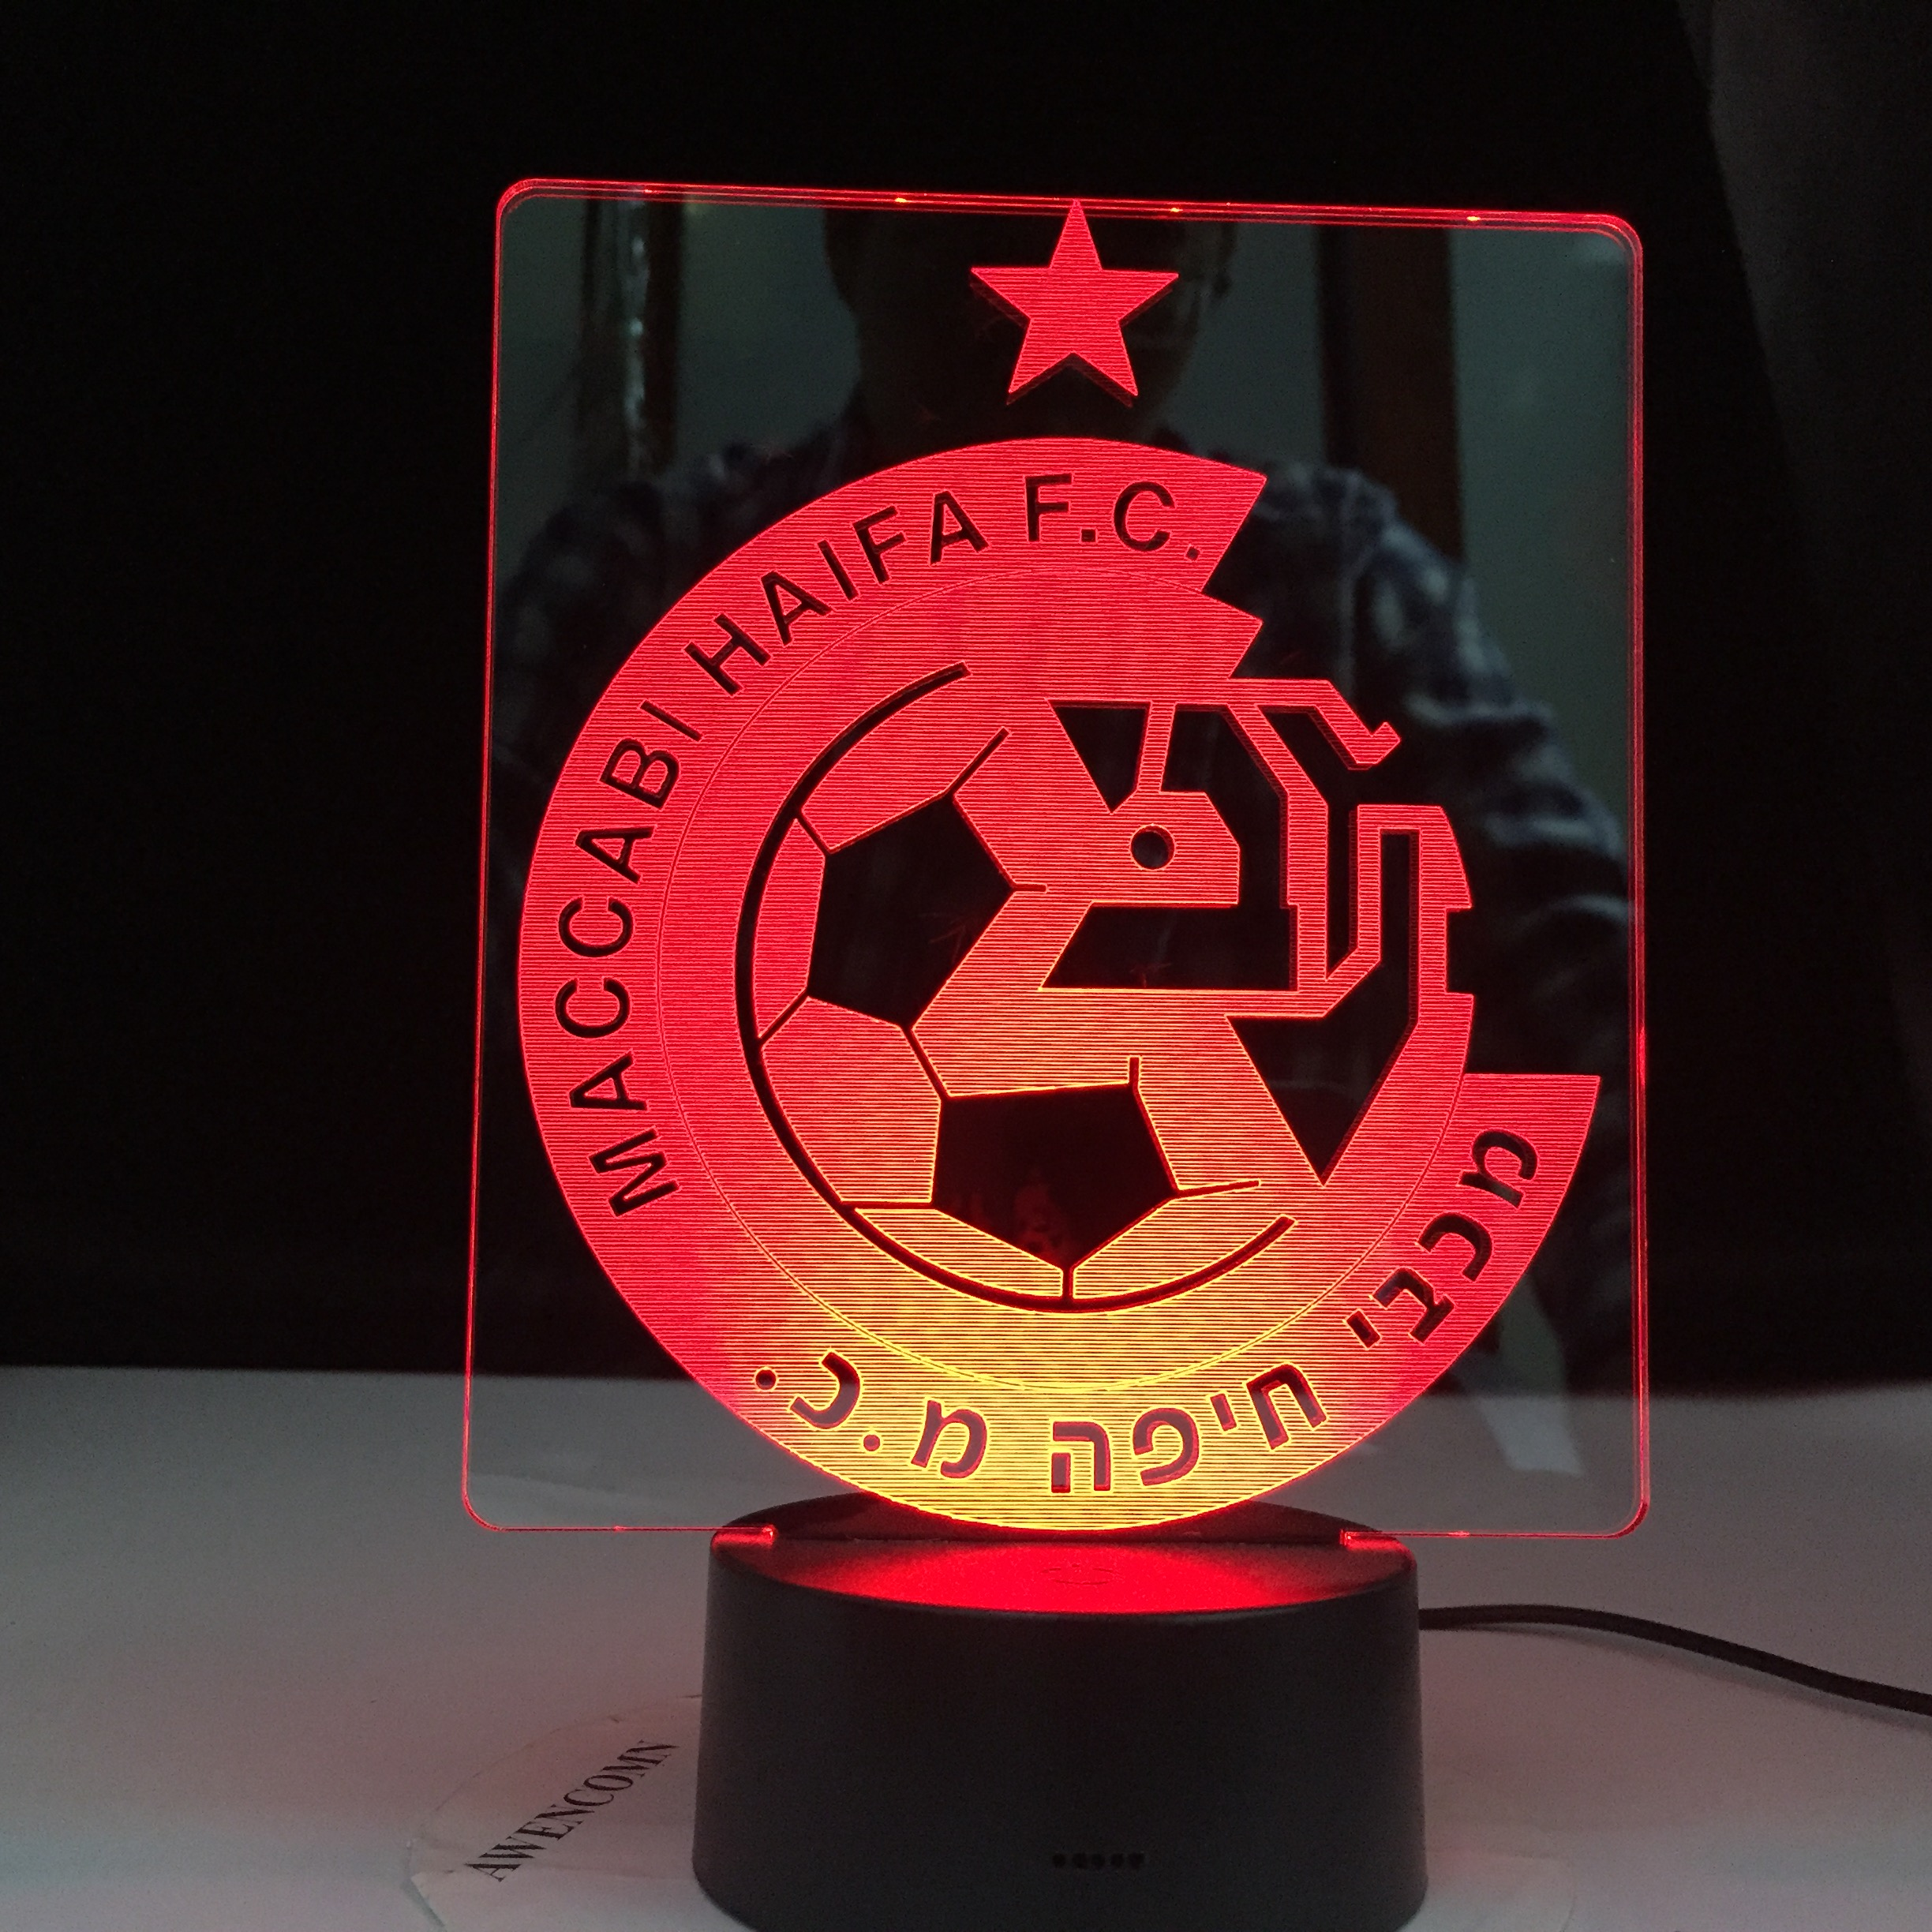 Maccabi Haifa F.C Club Soccer 3D LED Lamp Table Lamp Acrylic Creative Decorations Bedroom Sleeping Nightlight Gift Dropshipping